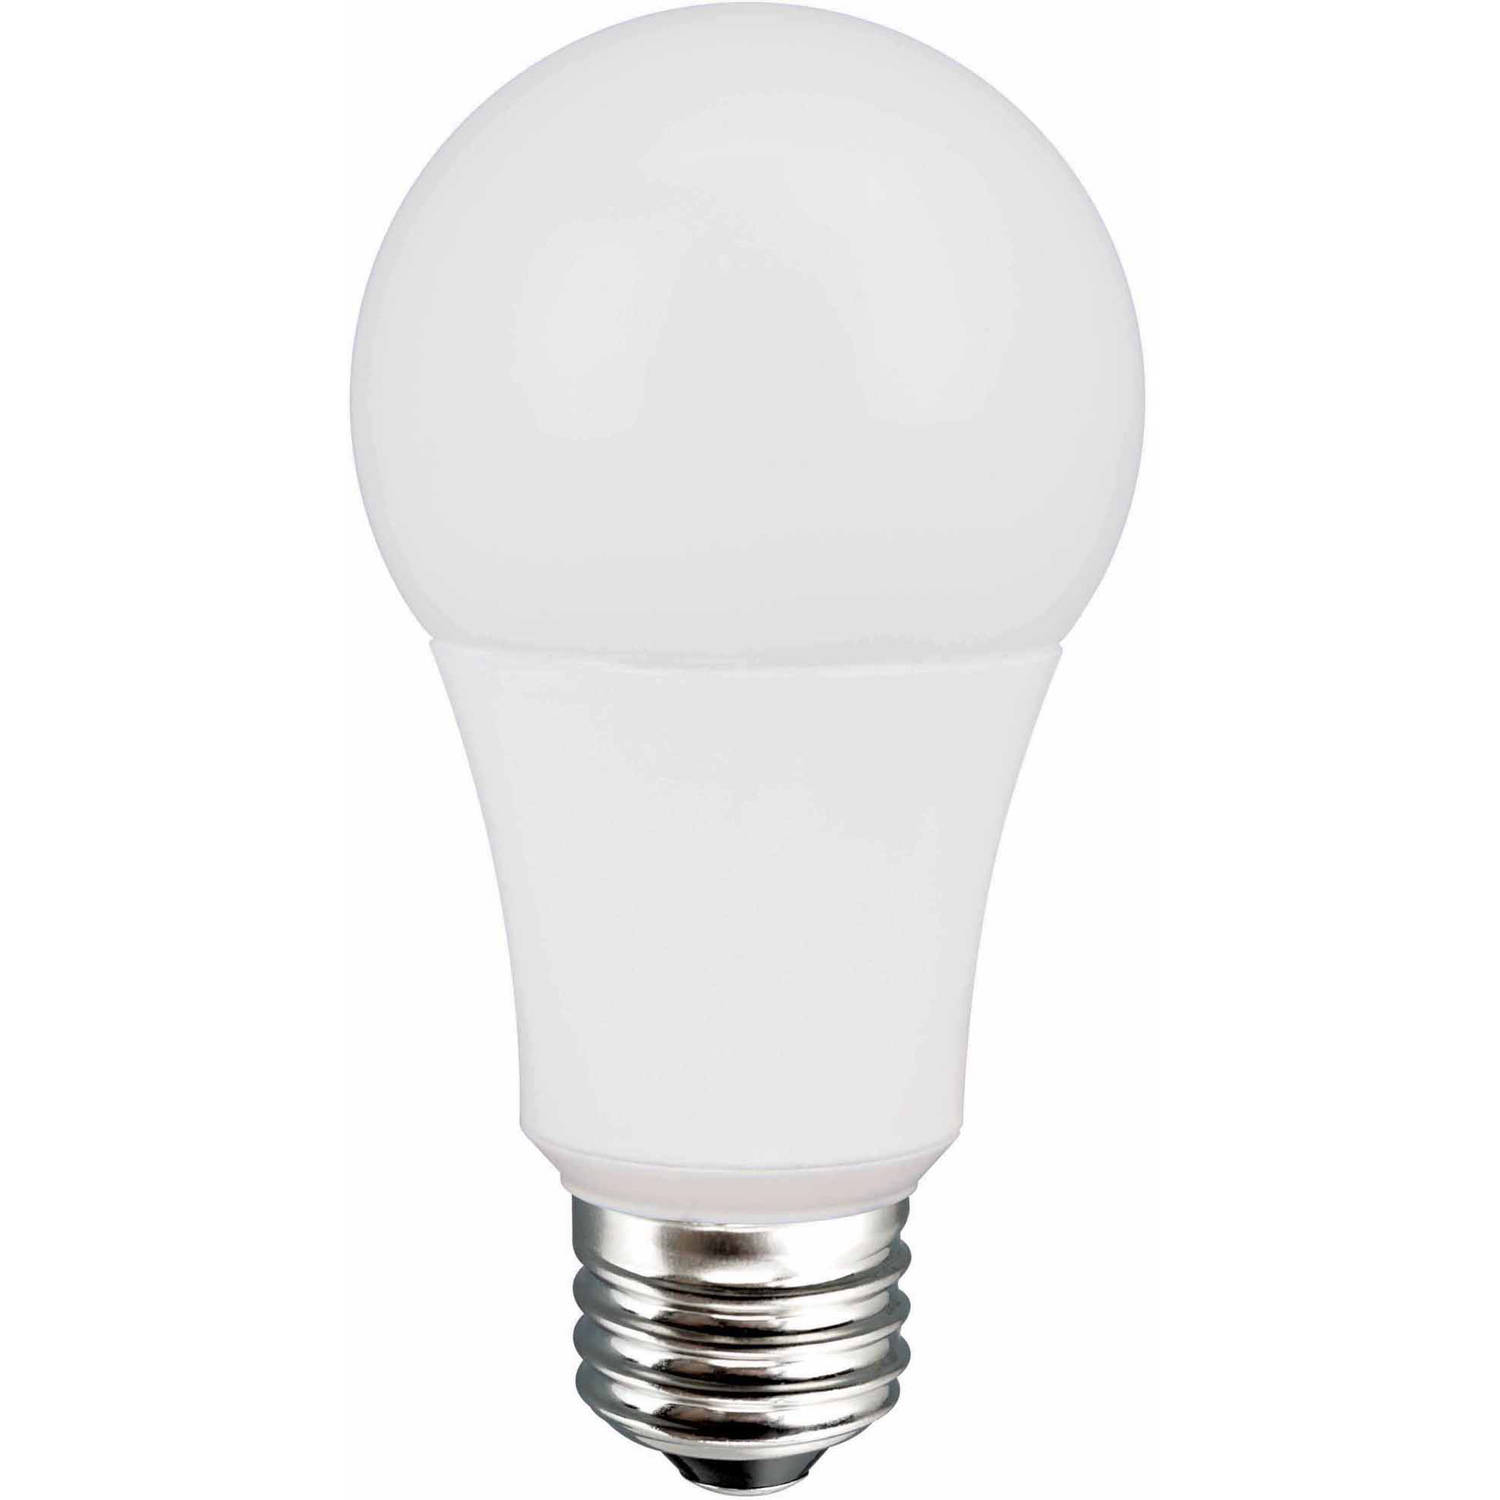 hight resolution of great value led light bulb 9w 60w equivalent soft white 1 count walmart com